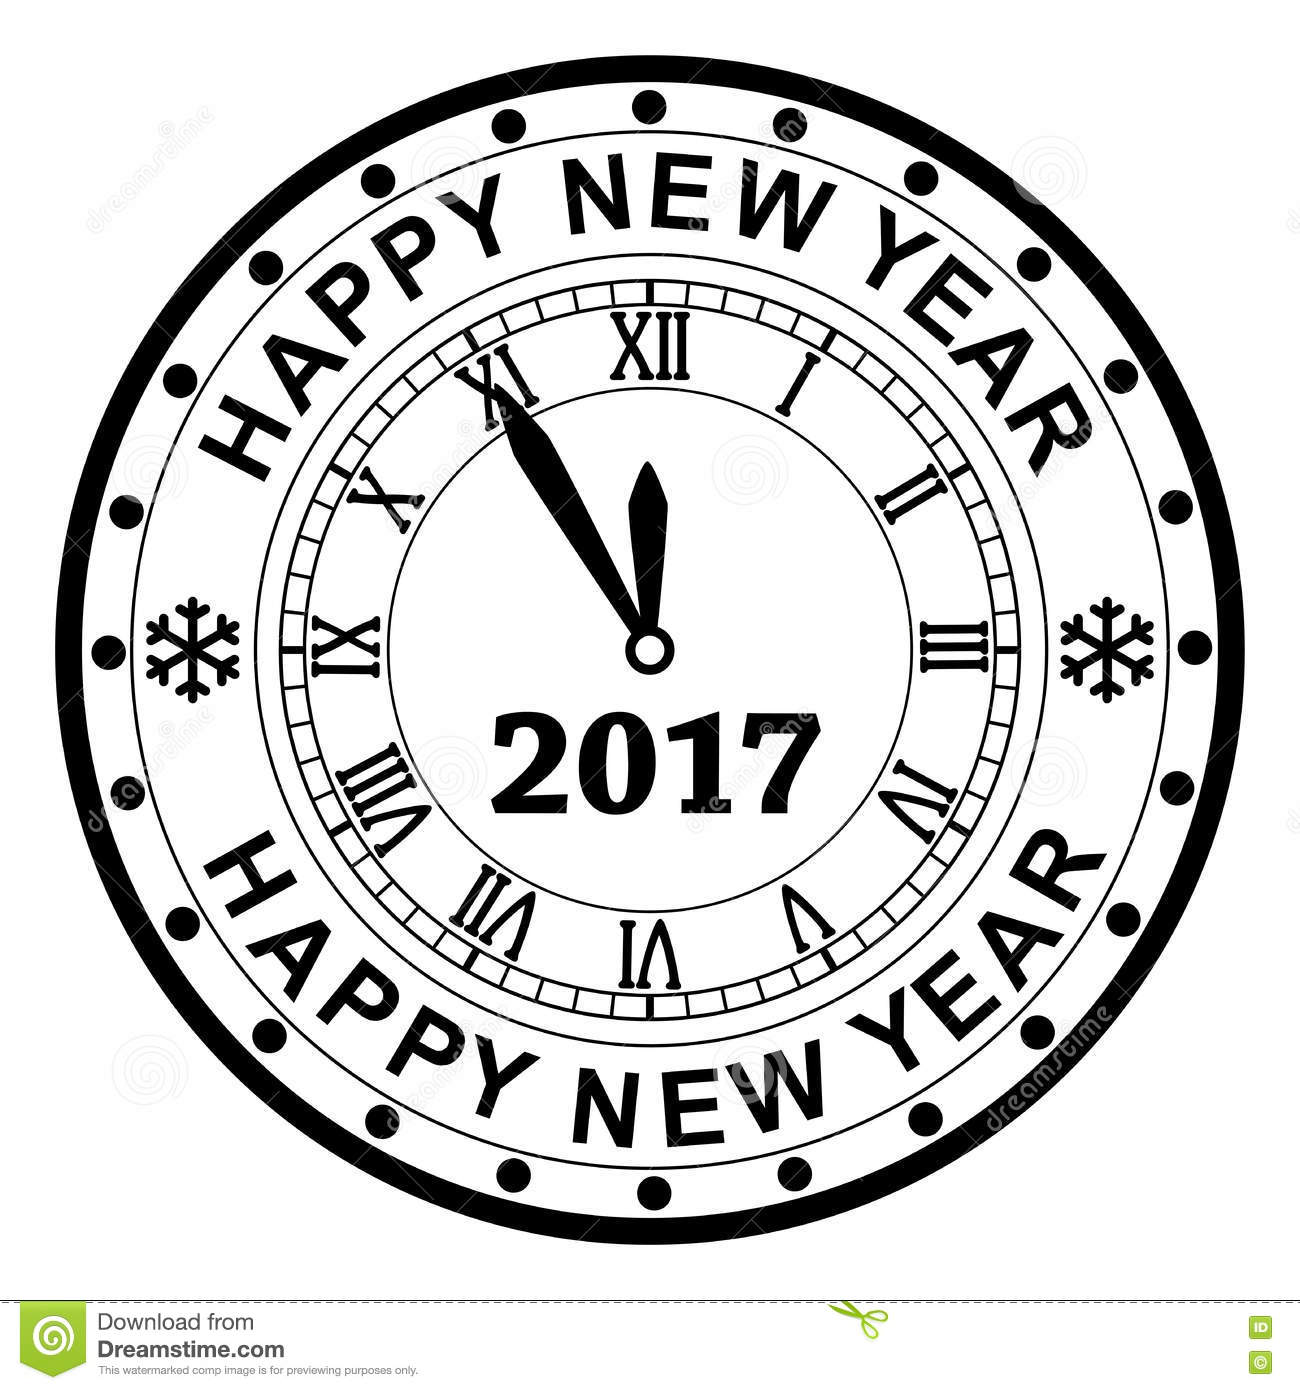 New Year 2017 Rubber Stamp Design With A Clock, Vector Stock Vector ...